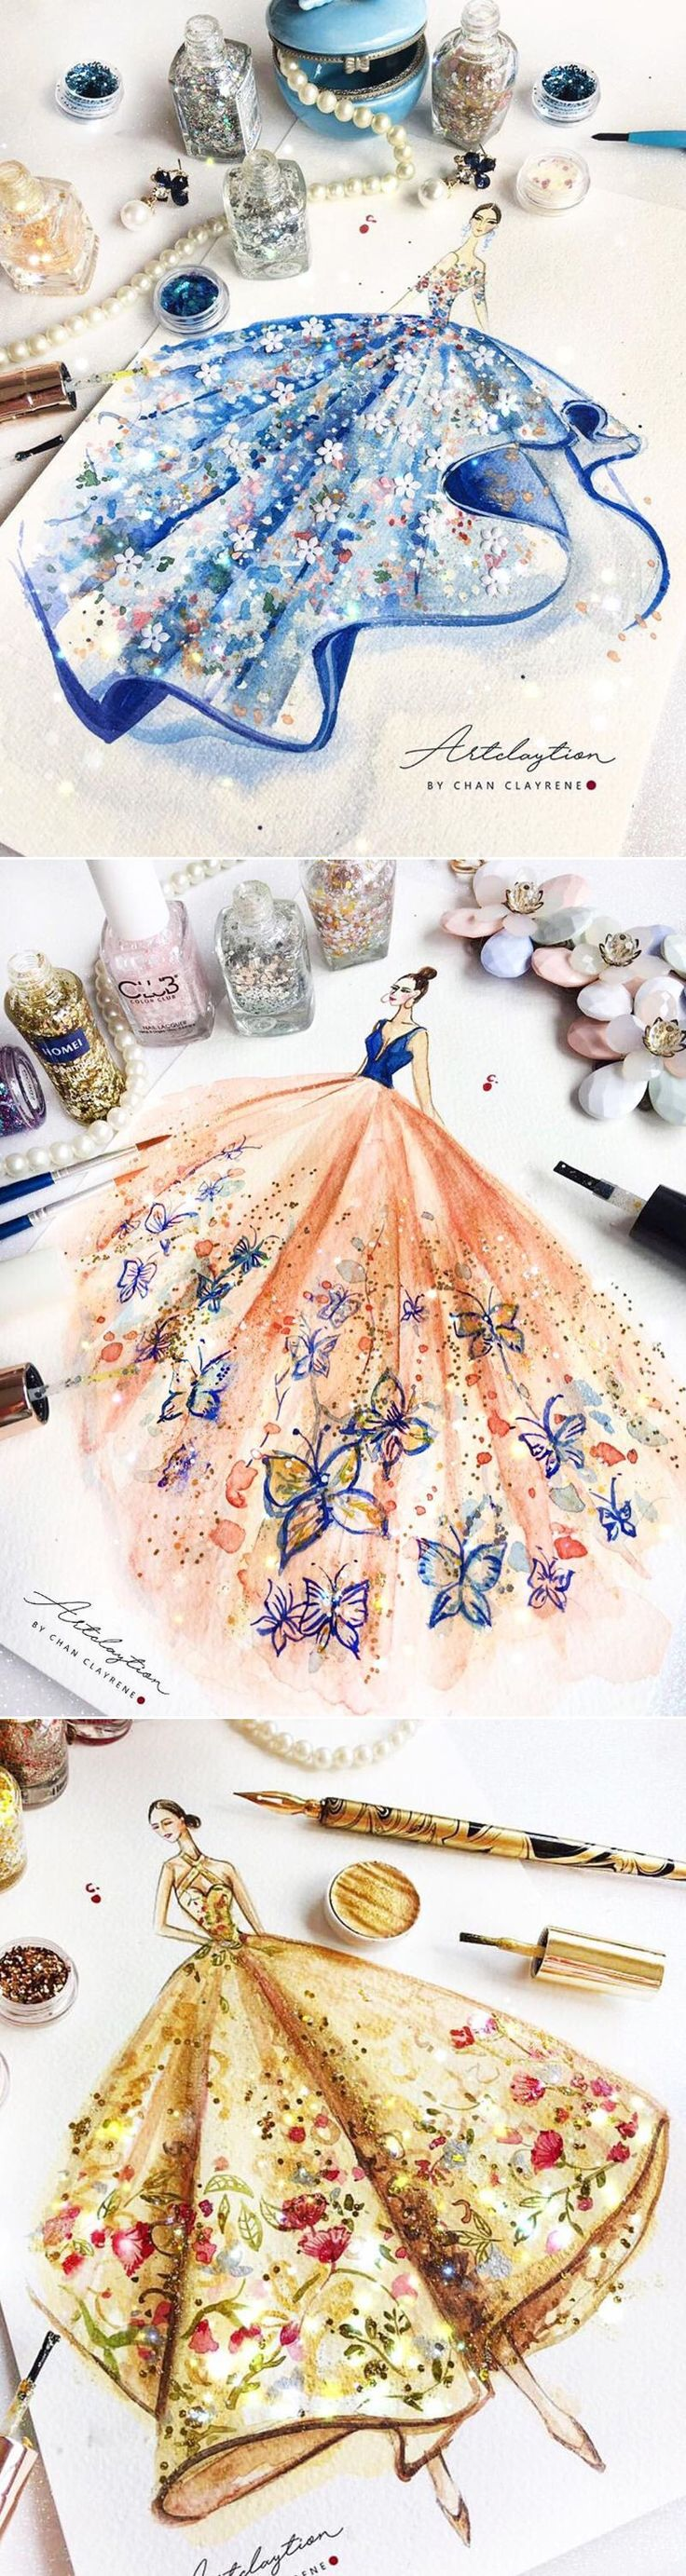 6 Mind-Blowing Fashion Illustrators You Need to Follow! Chan Clayrene